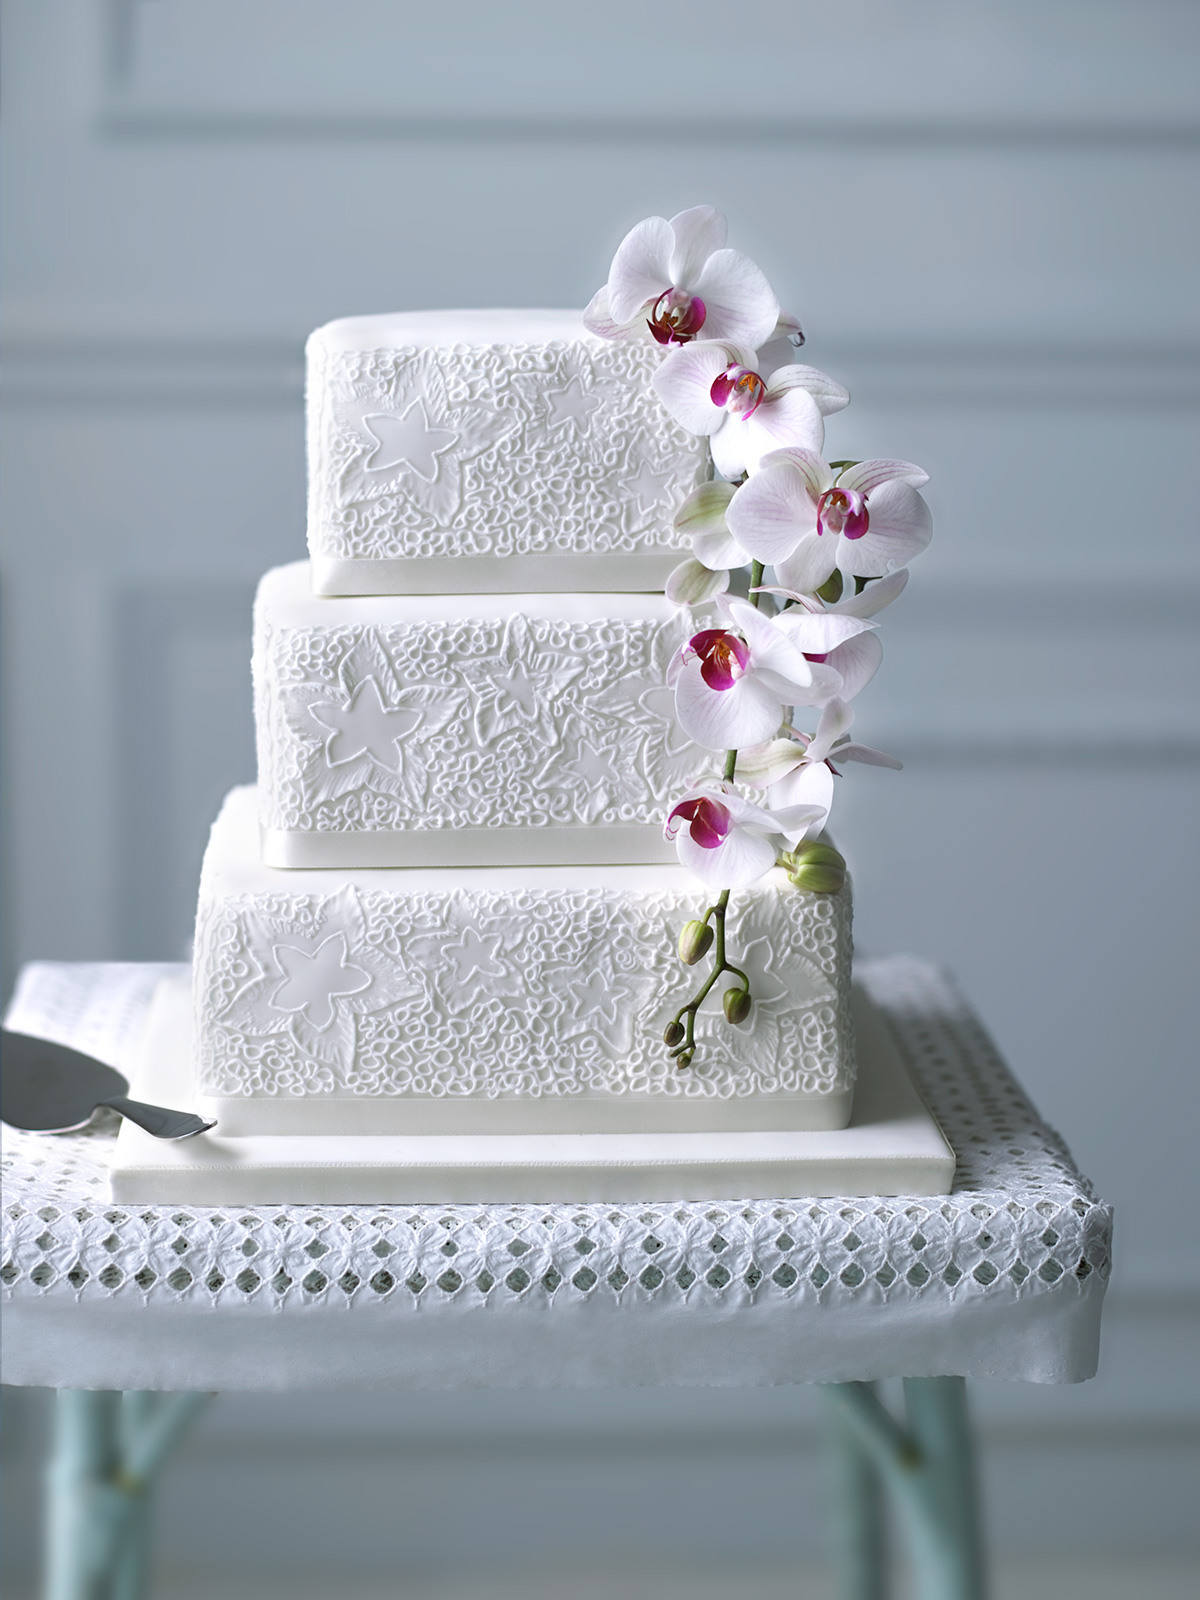 Old Fashioned Marks And Spencer Cakes Wedding Ensign - The Wedding ...